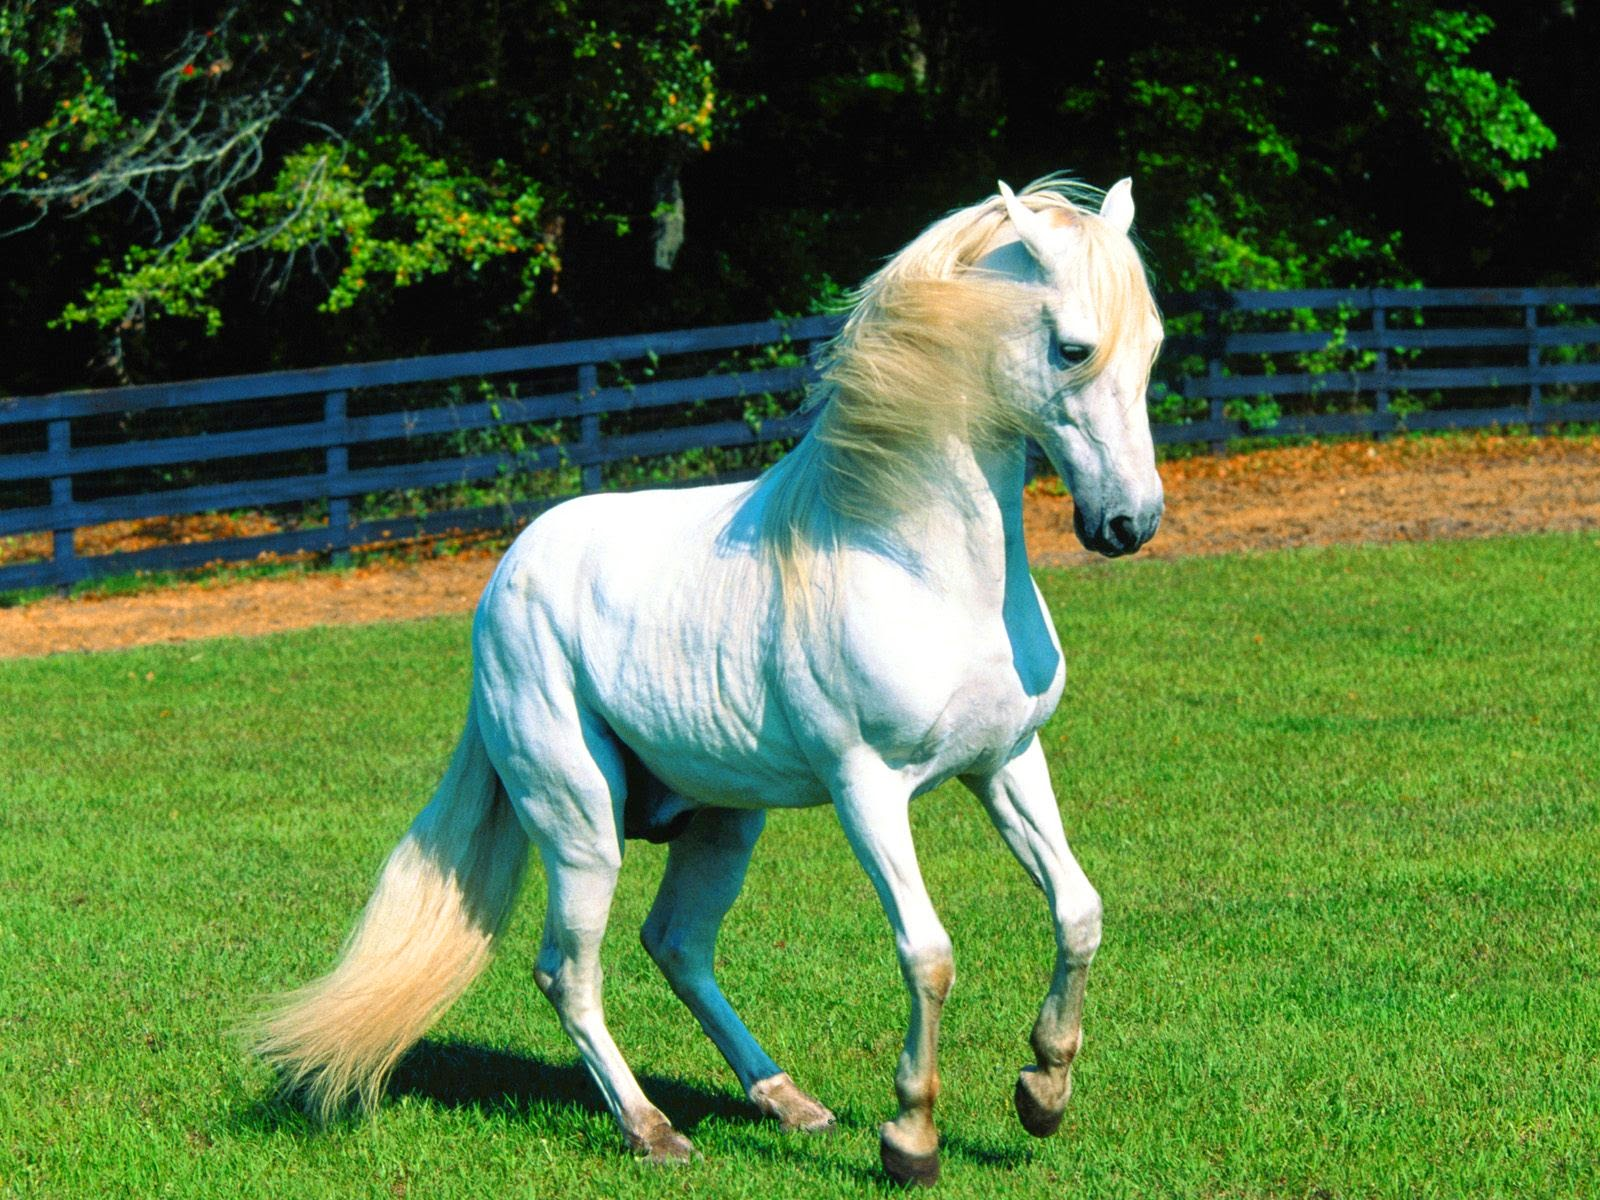 Beautiful Horses Wallpapers Free Download White Horse 1600x1200 Wallpaper Teahub Io